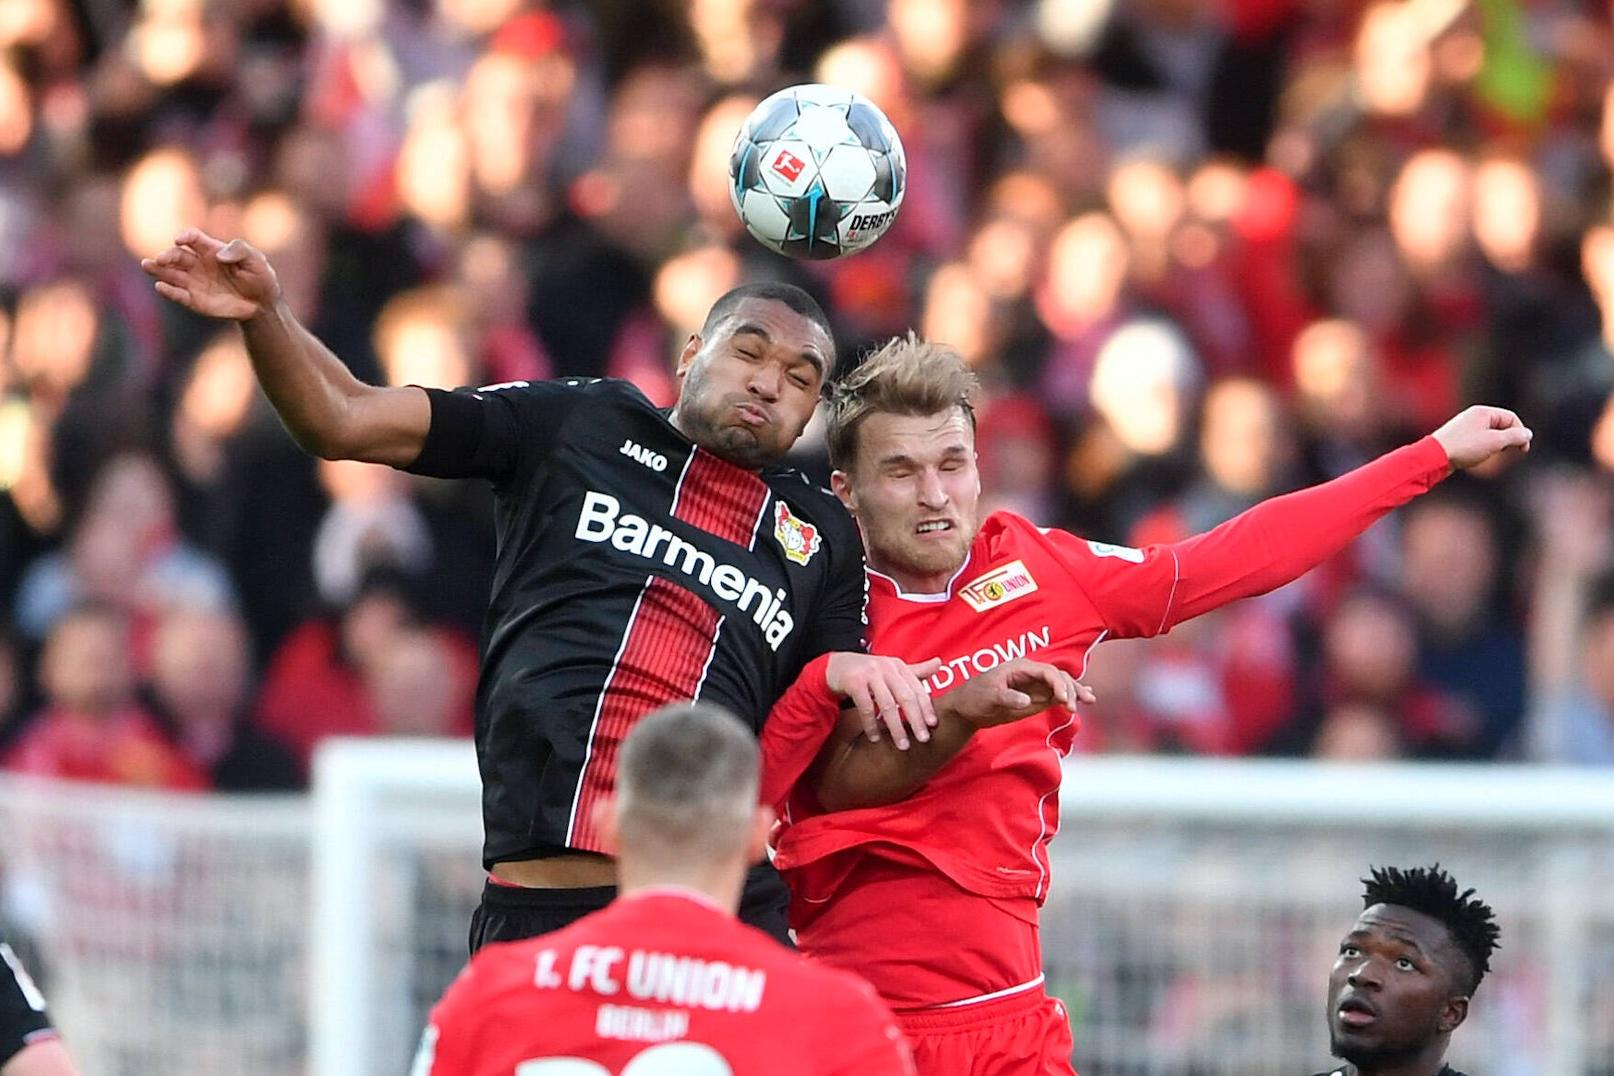 Leverkusen vs. Union